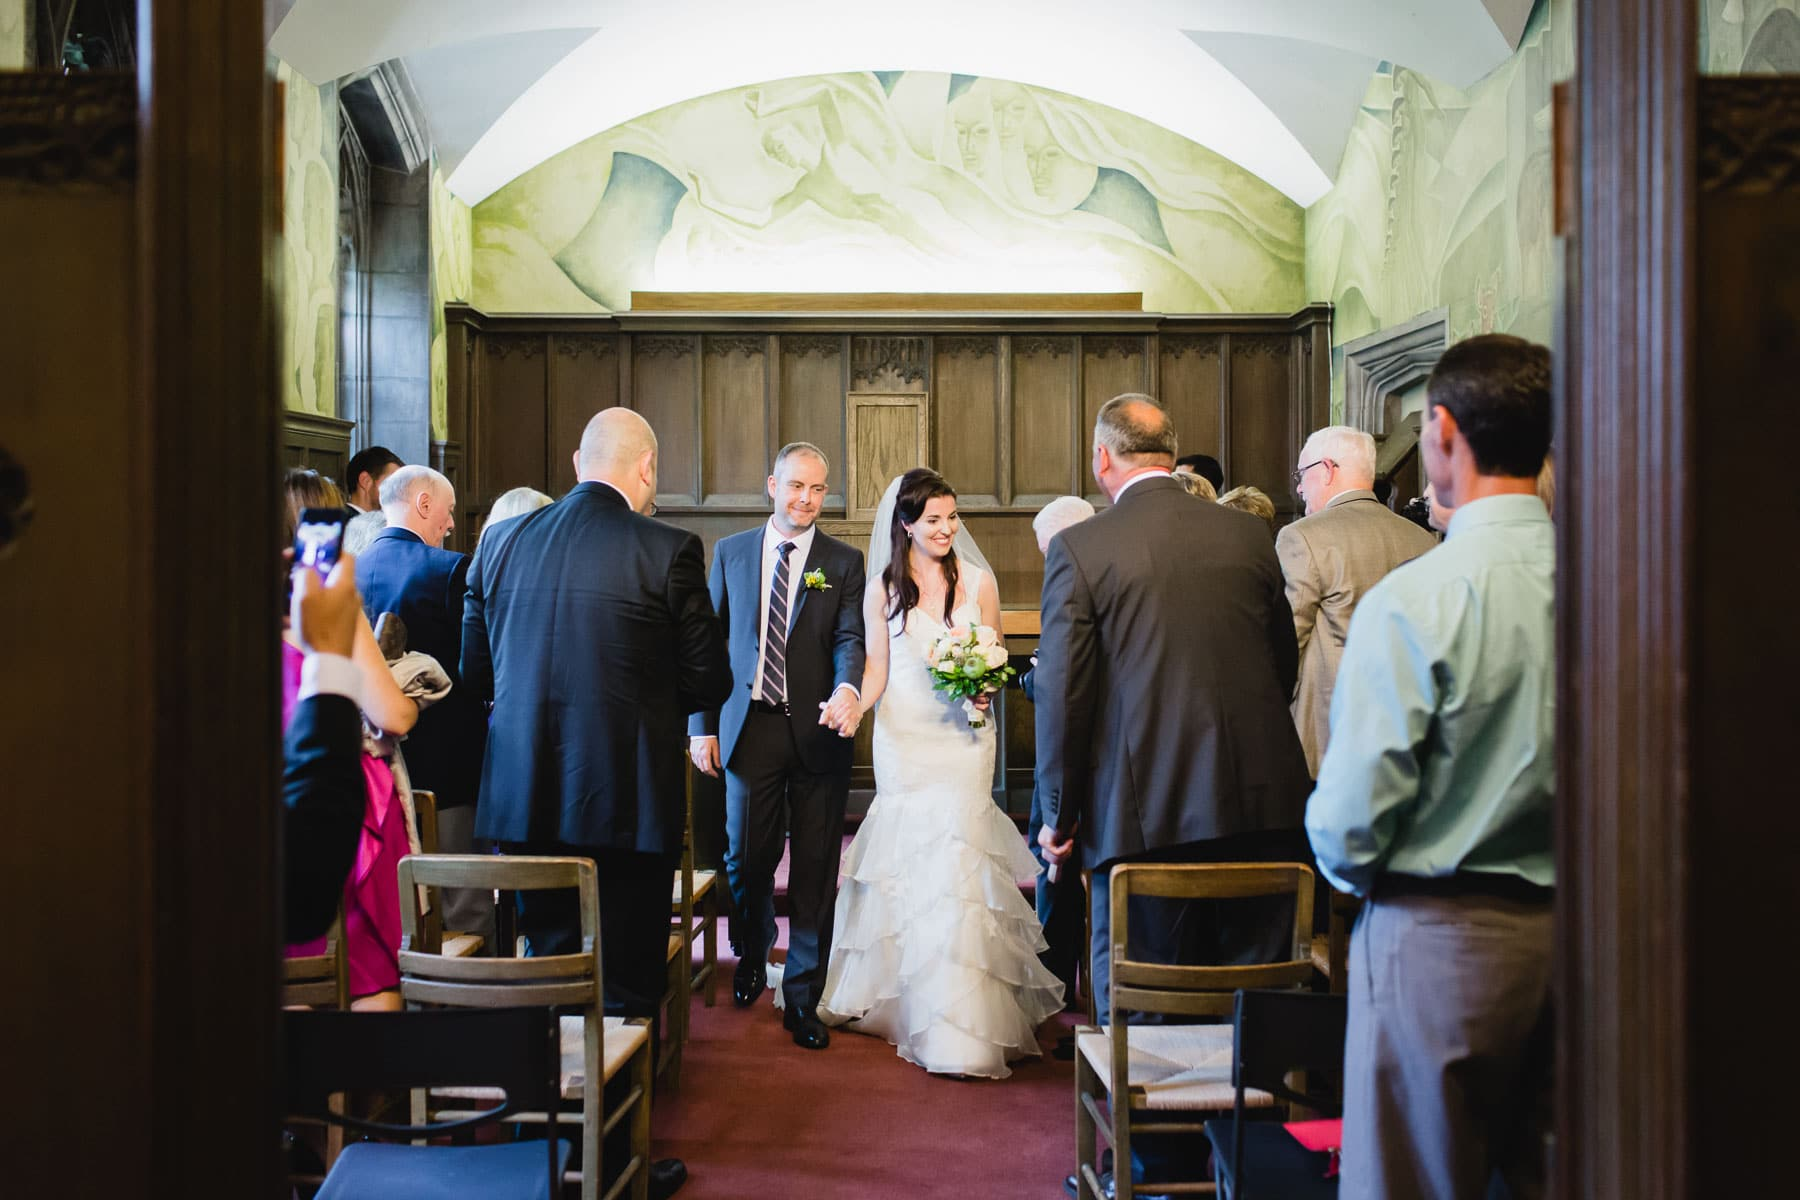 The bride and groom walk down the aisle after the ceremony concluded in this Hart House wedding photo.